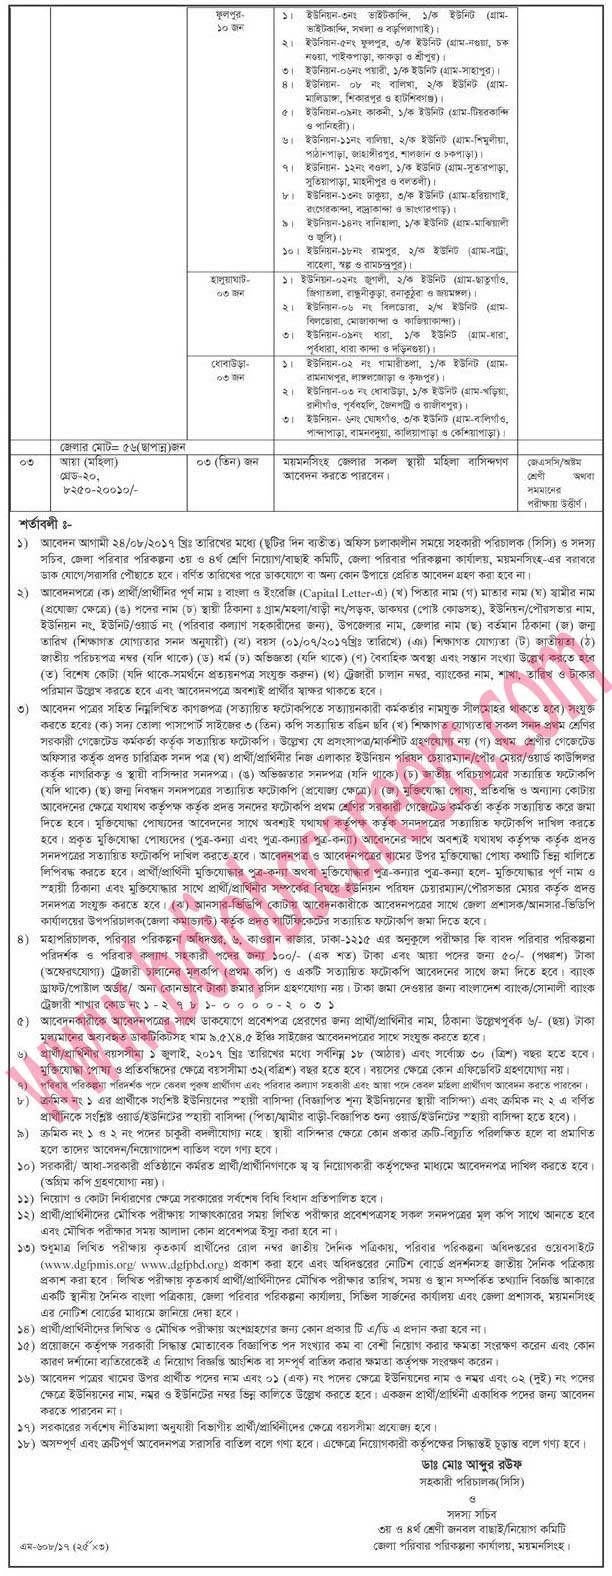 Mymensingh District Family Planning Office Jobs Circular 2017